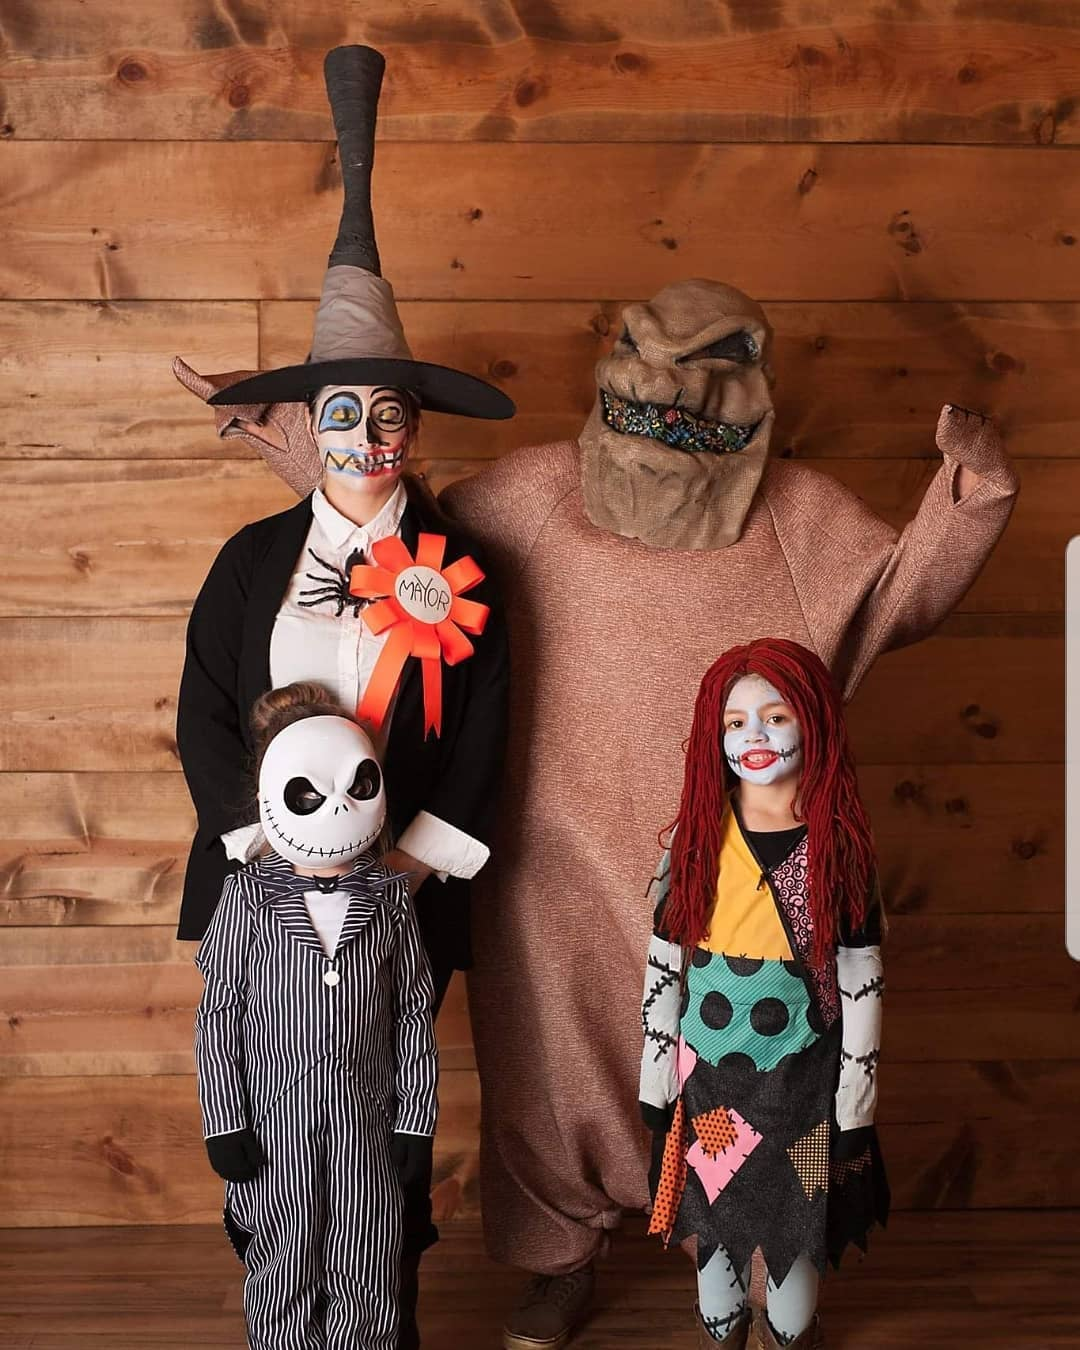 Crazy Halloween Ideas.The Best Halloween Costumes For Families Of Four 2020 Popsugar Family